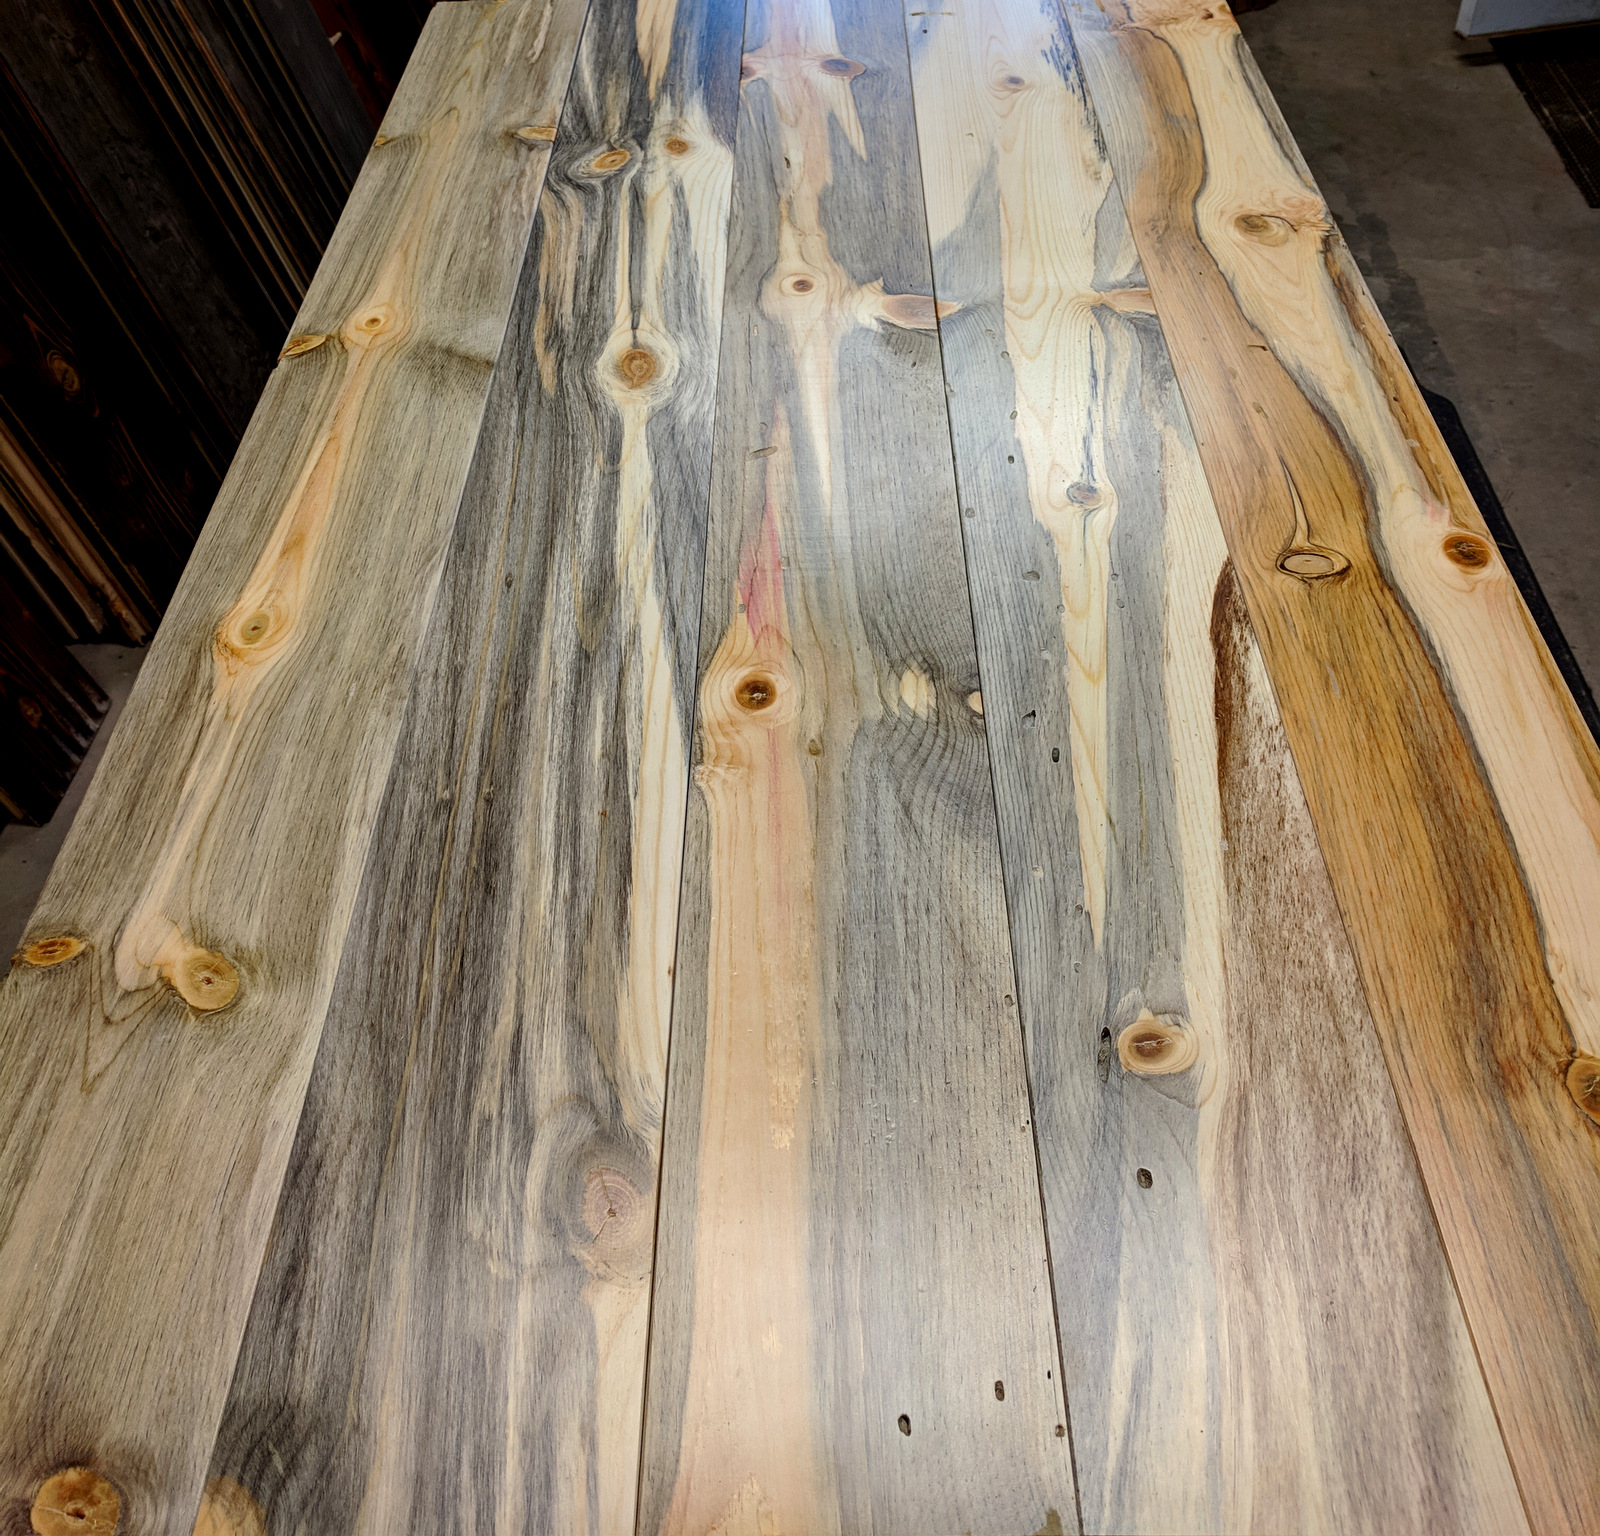 Prefinished vs unfinished wood wall paneling for Prefinished wood panels